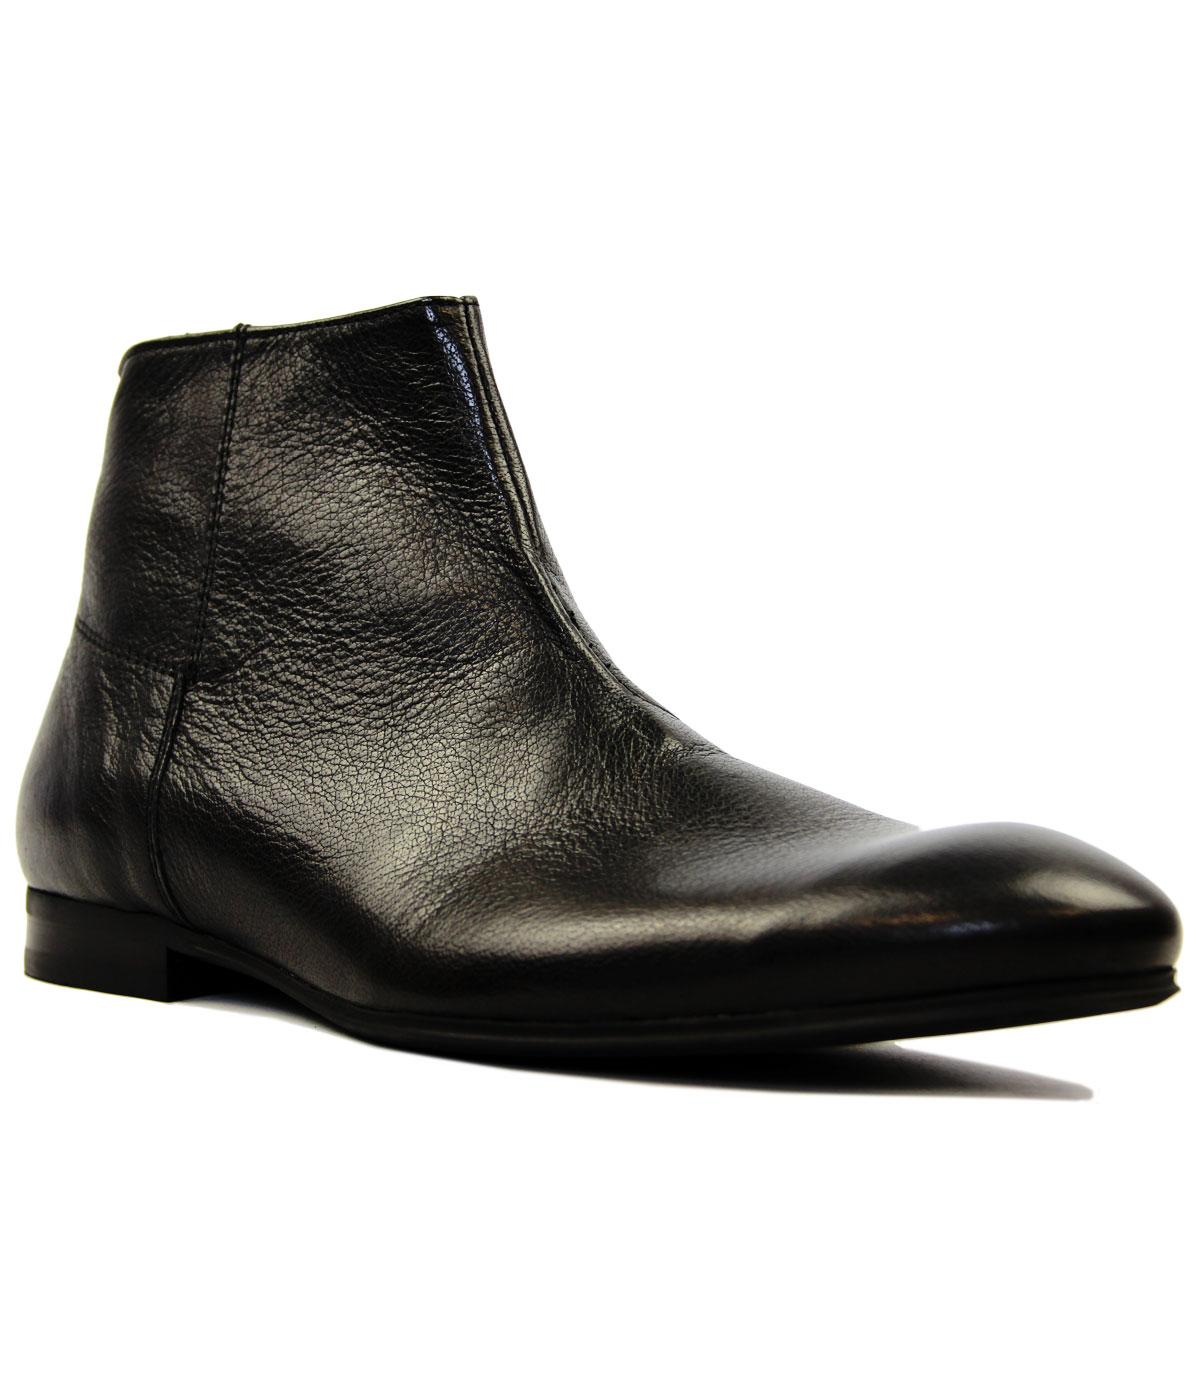 Reville H by HUDSON Retro Side Zip Chelsea Boots